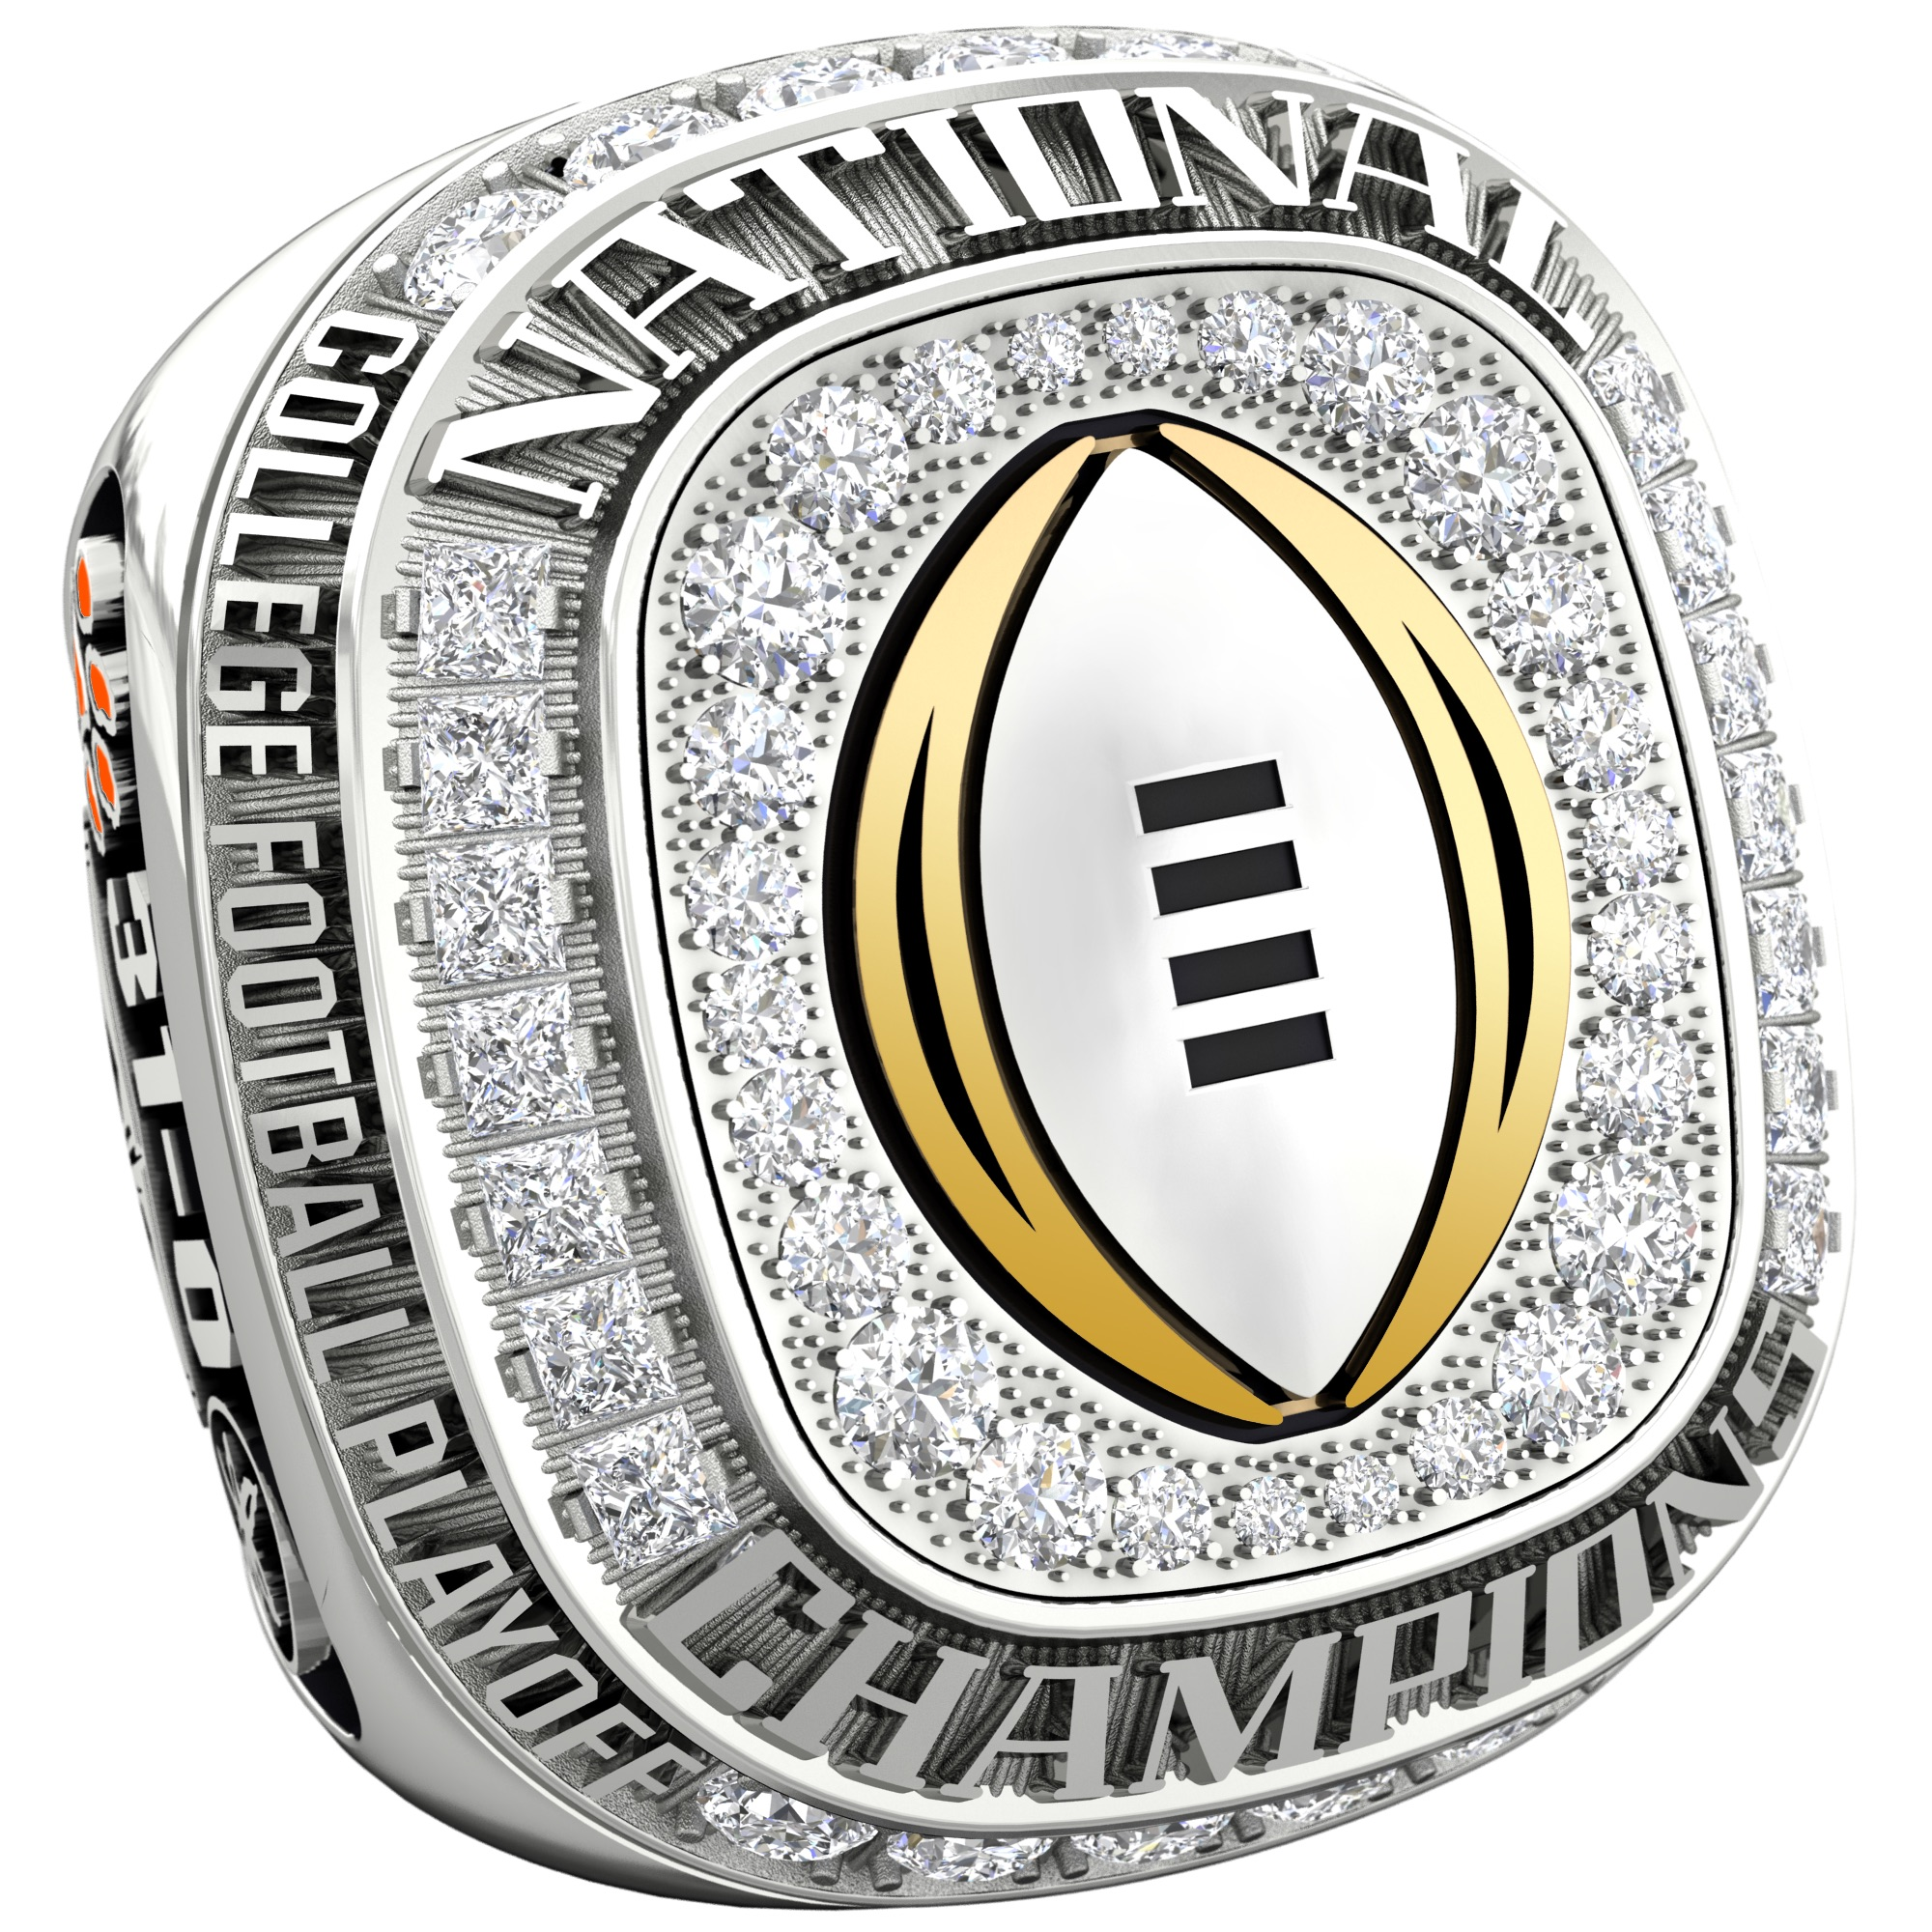 Jostens And College Football Playoff Renew Partnership To Present